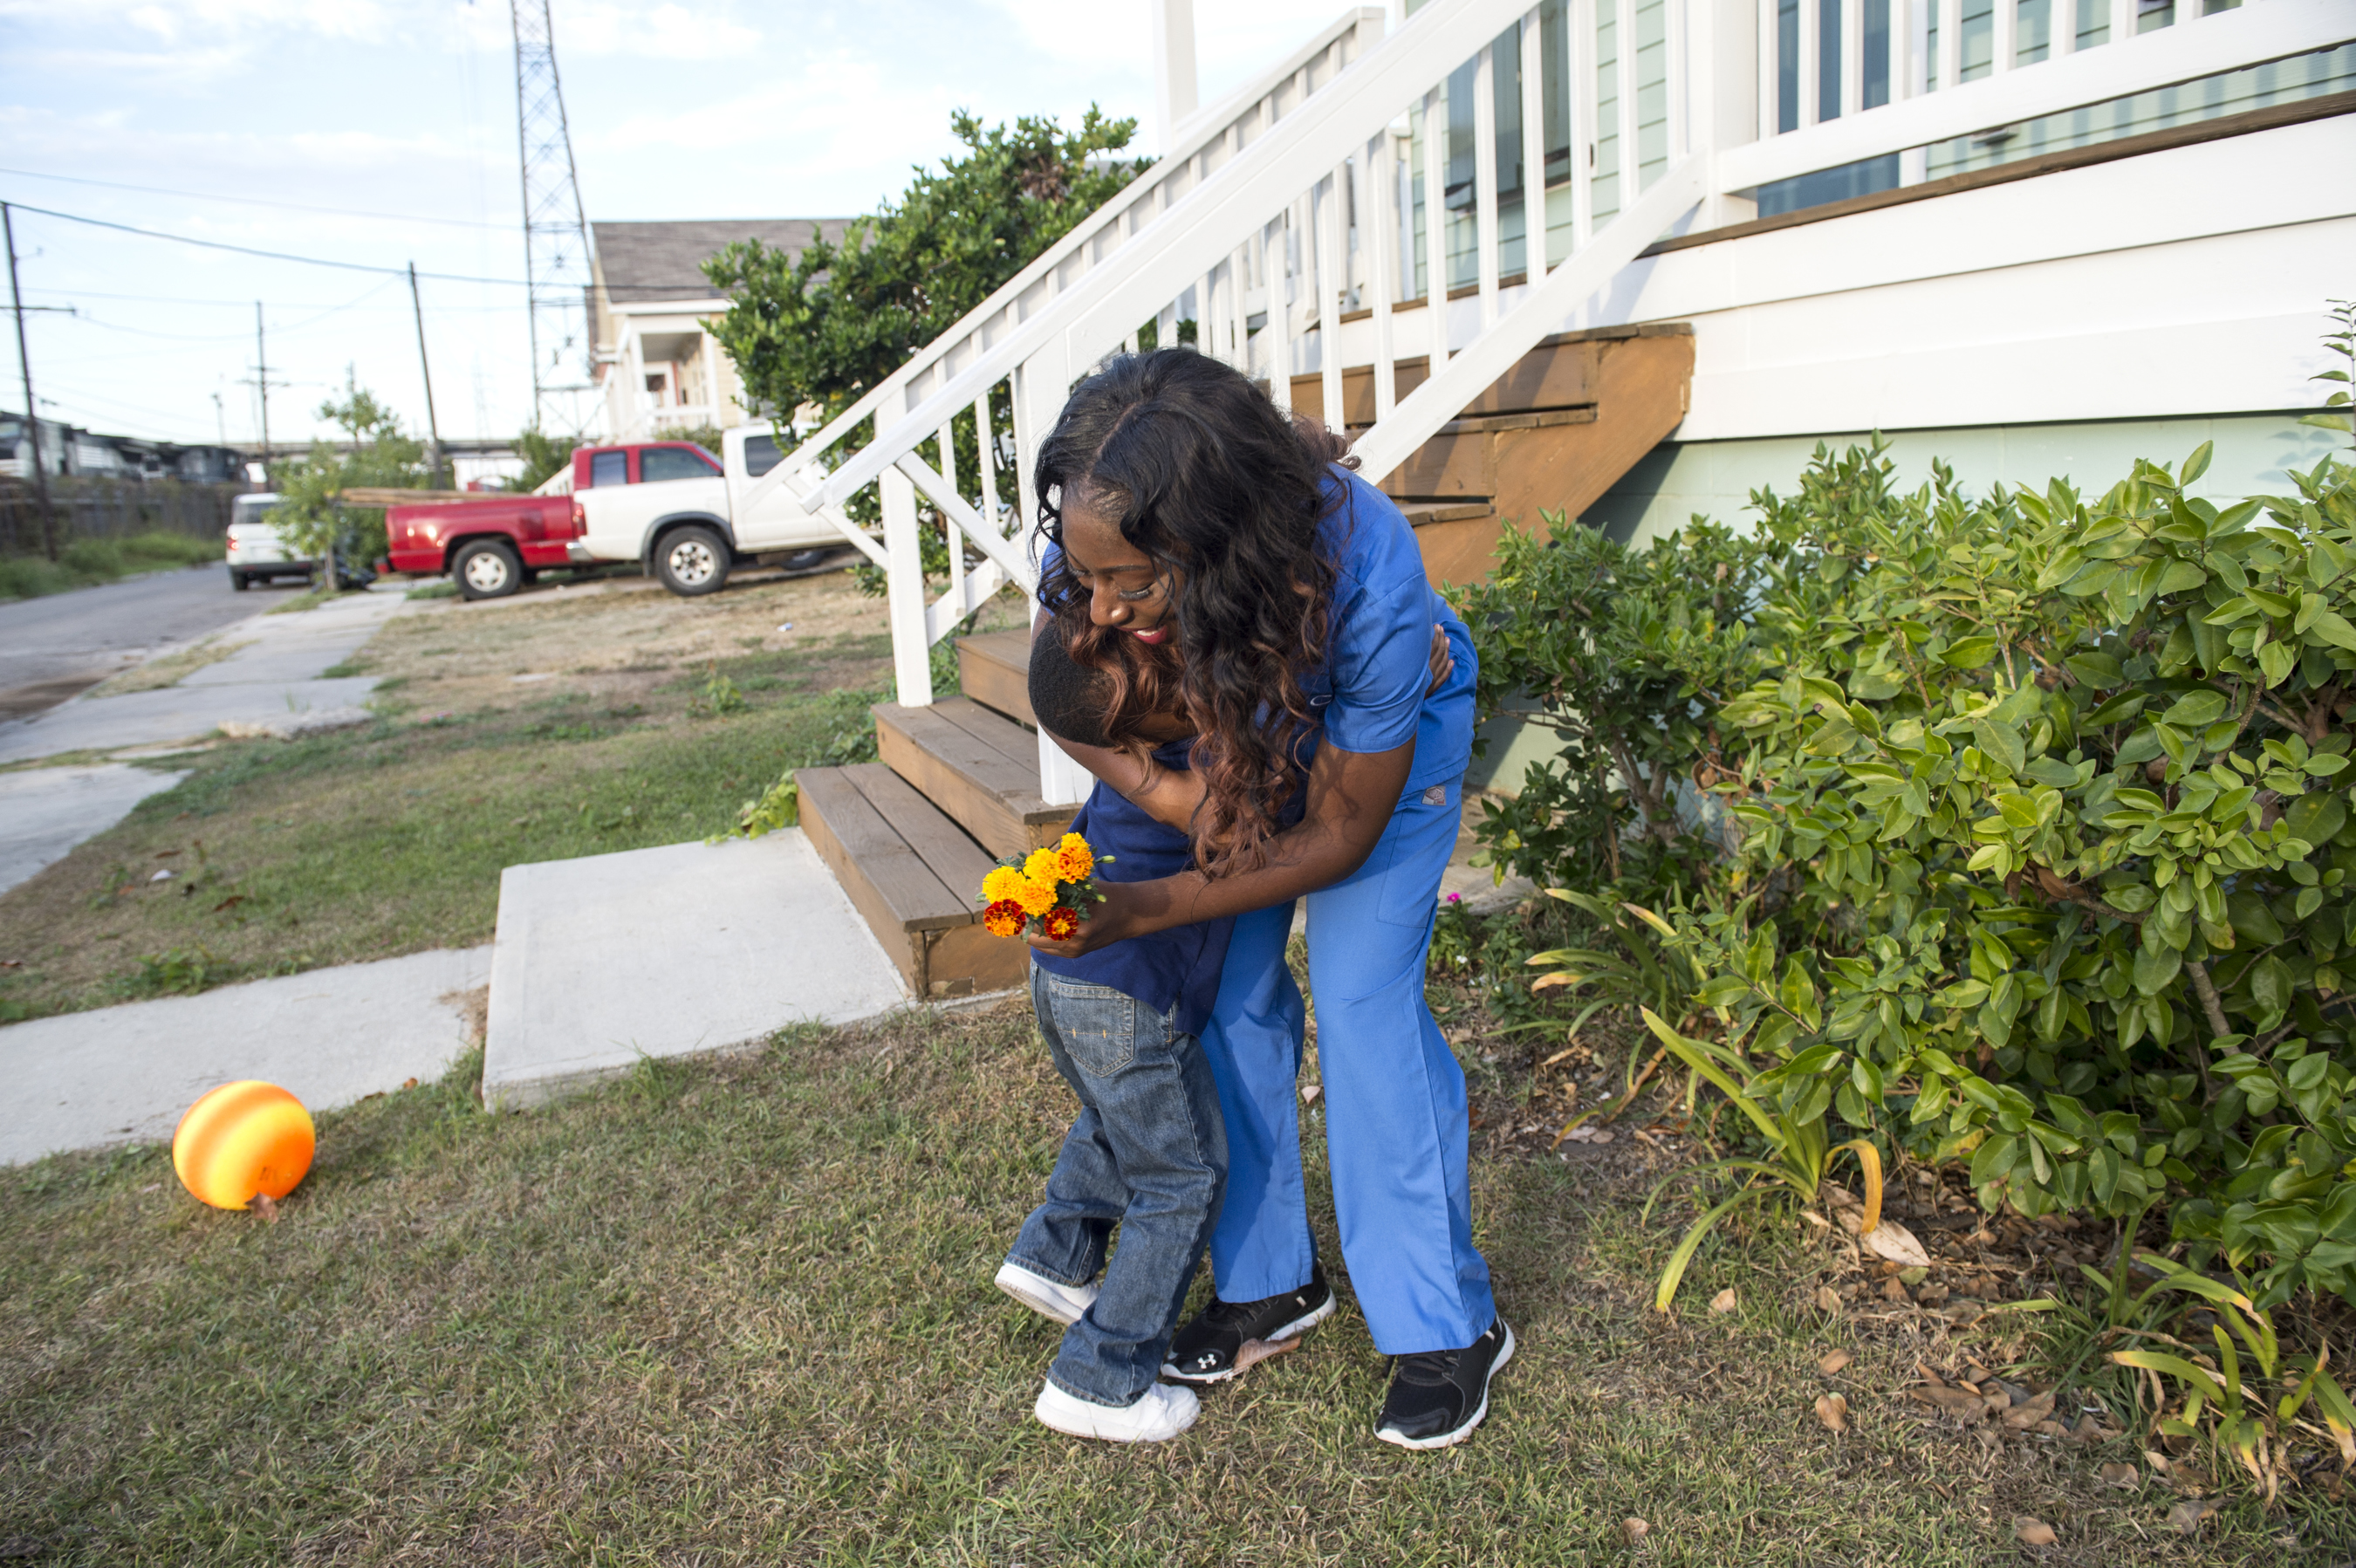 Tonya and her 3 year old son, Ryan, in Habitat For Humanity's Montegut Street home on November 6, 2016, in New Orleans, LA. (Erika Goldring Photo)